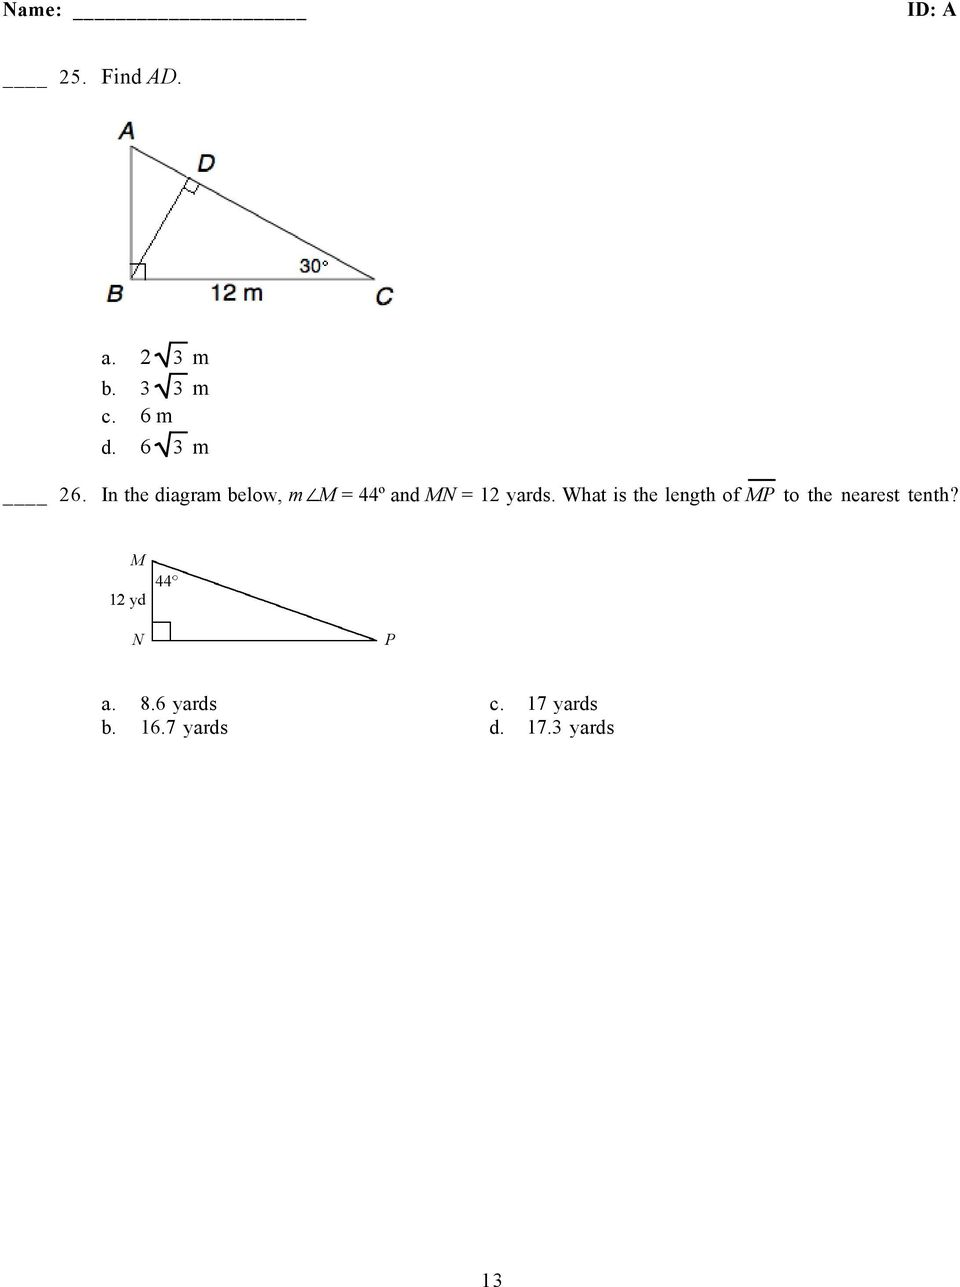 Geometry Eoc Practice Test 4 Pdf Diagram Below Shows Which Angles Betwee 0 Degreesand 360 Degrees Lie What Is The Length Of Mp To Nearest Tenth A